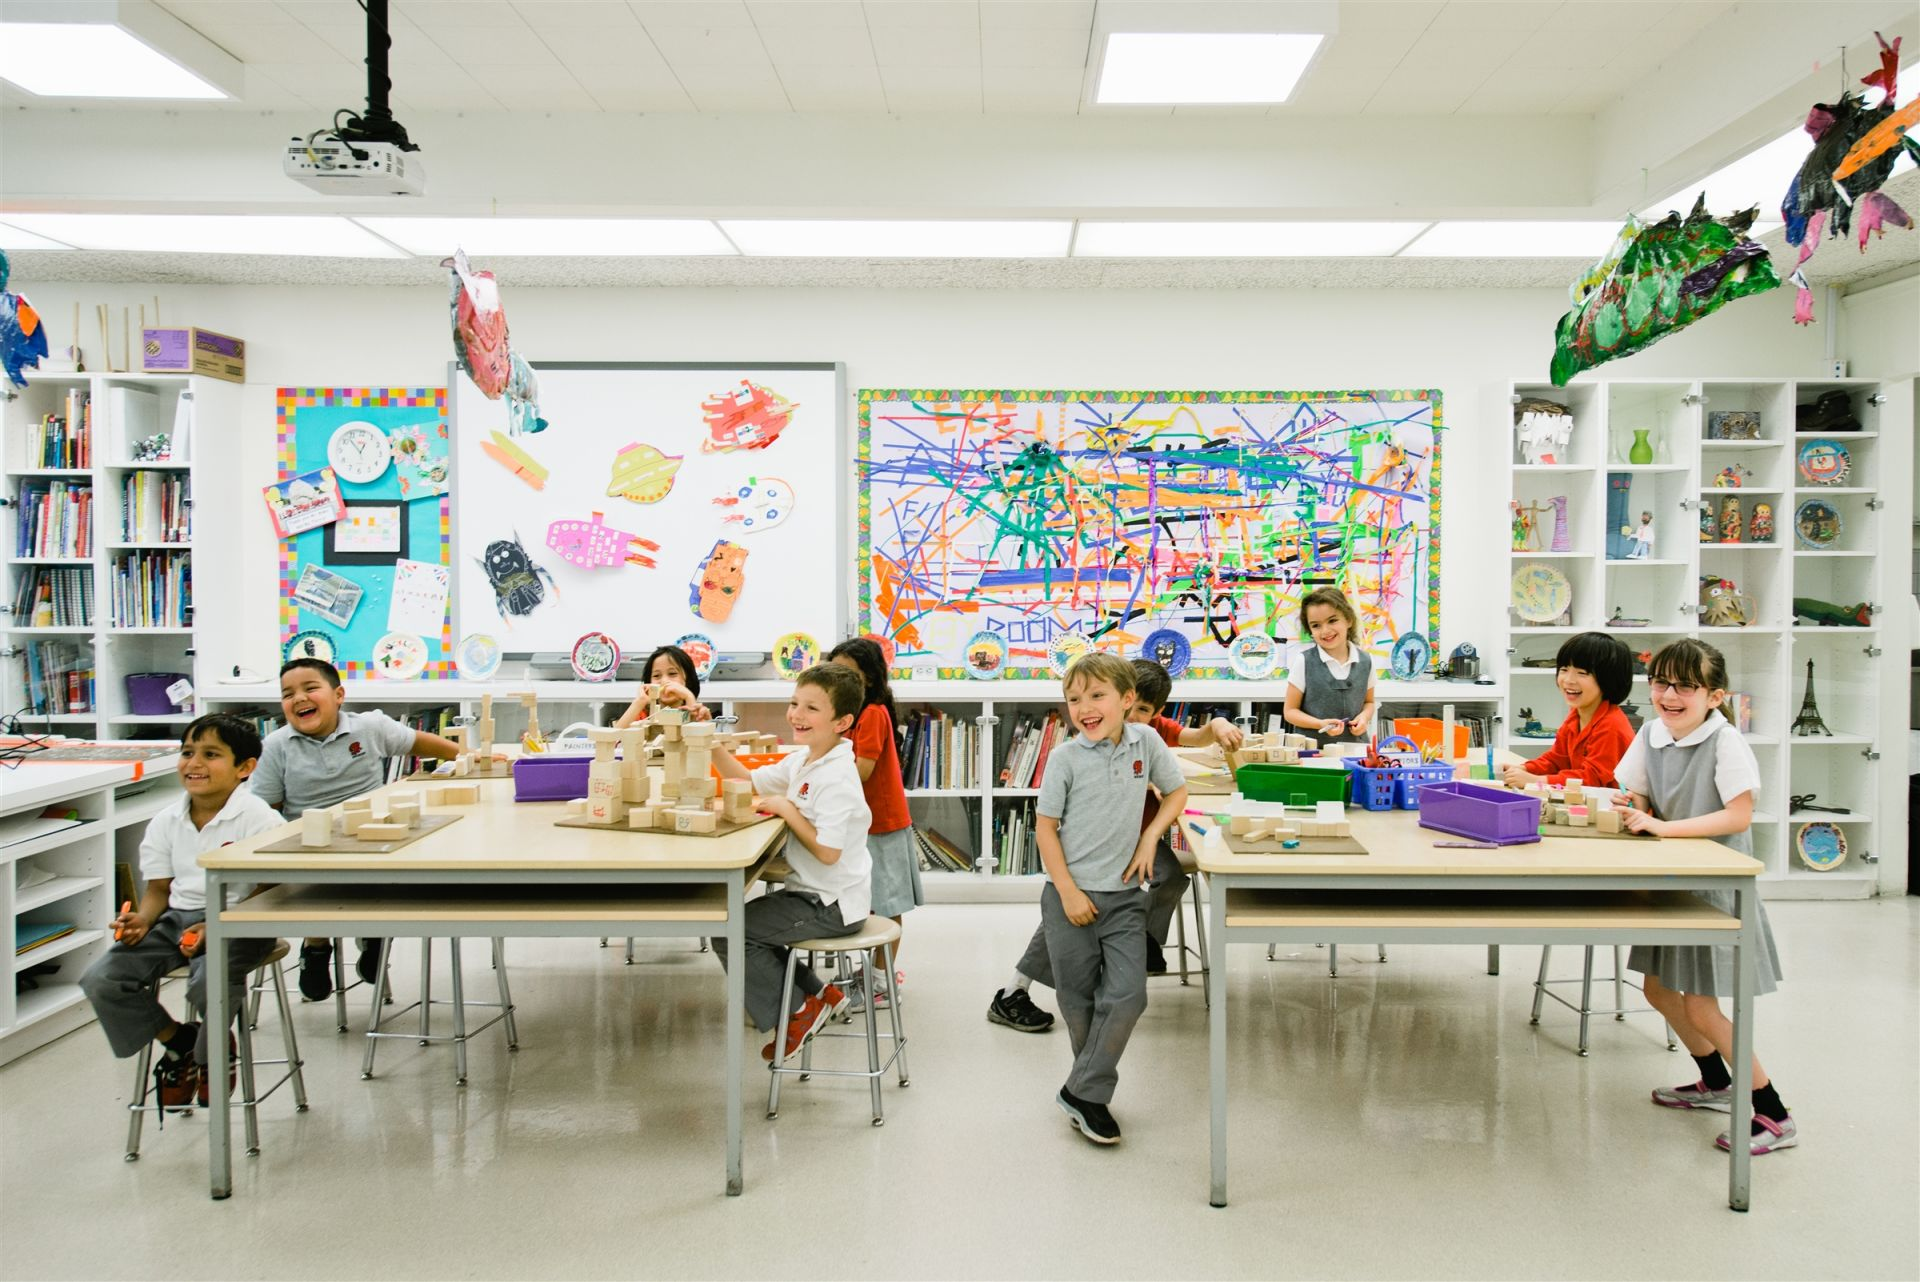 All Lower School art classes are held in the Lower School art room.